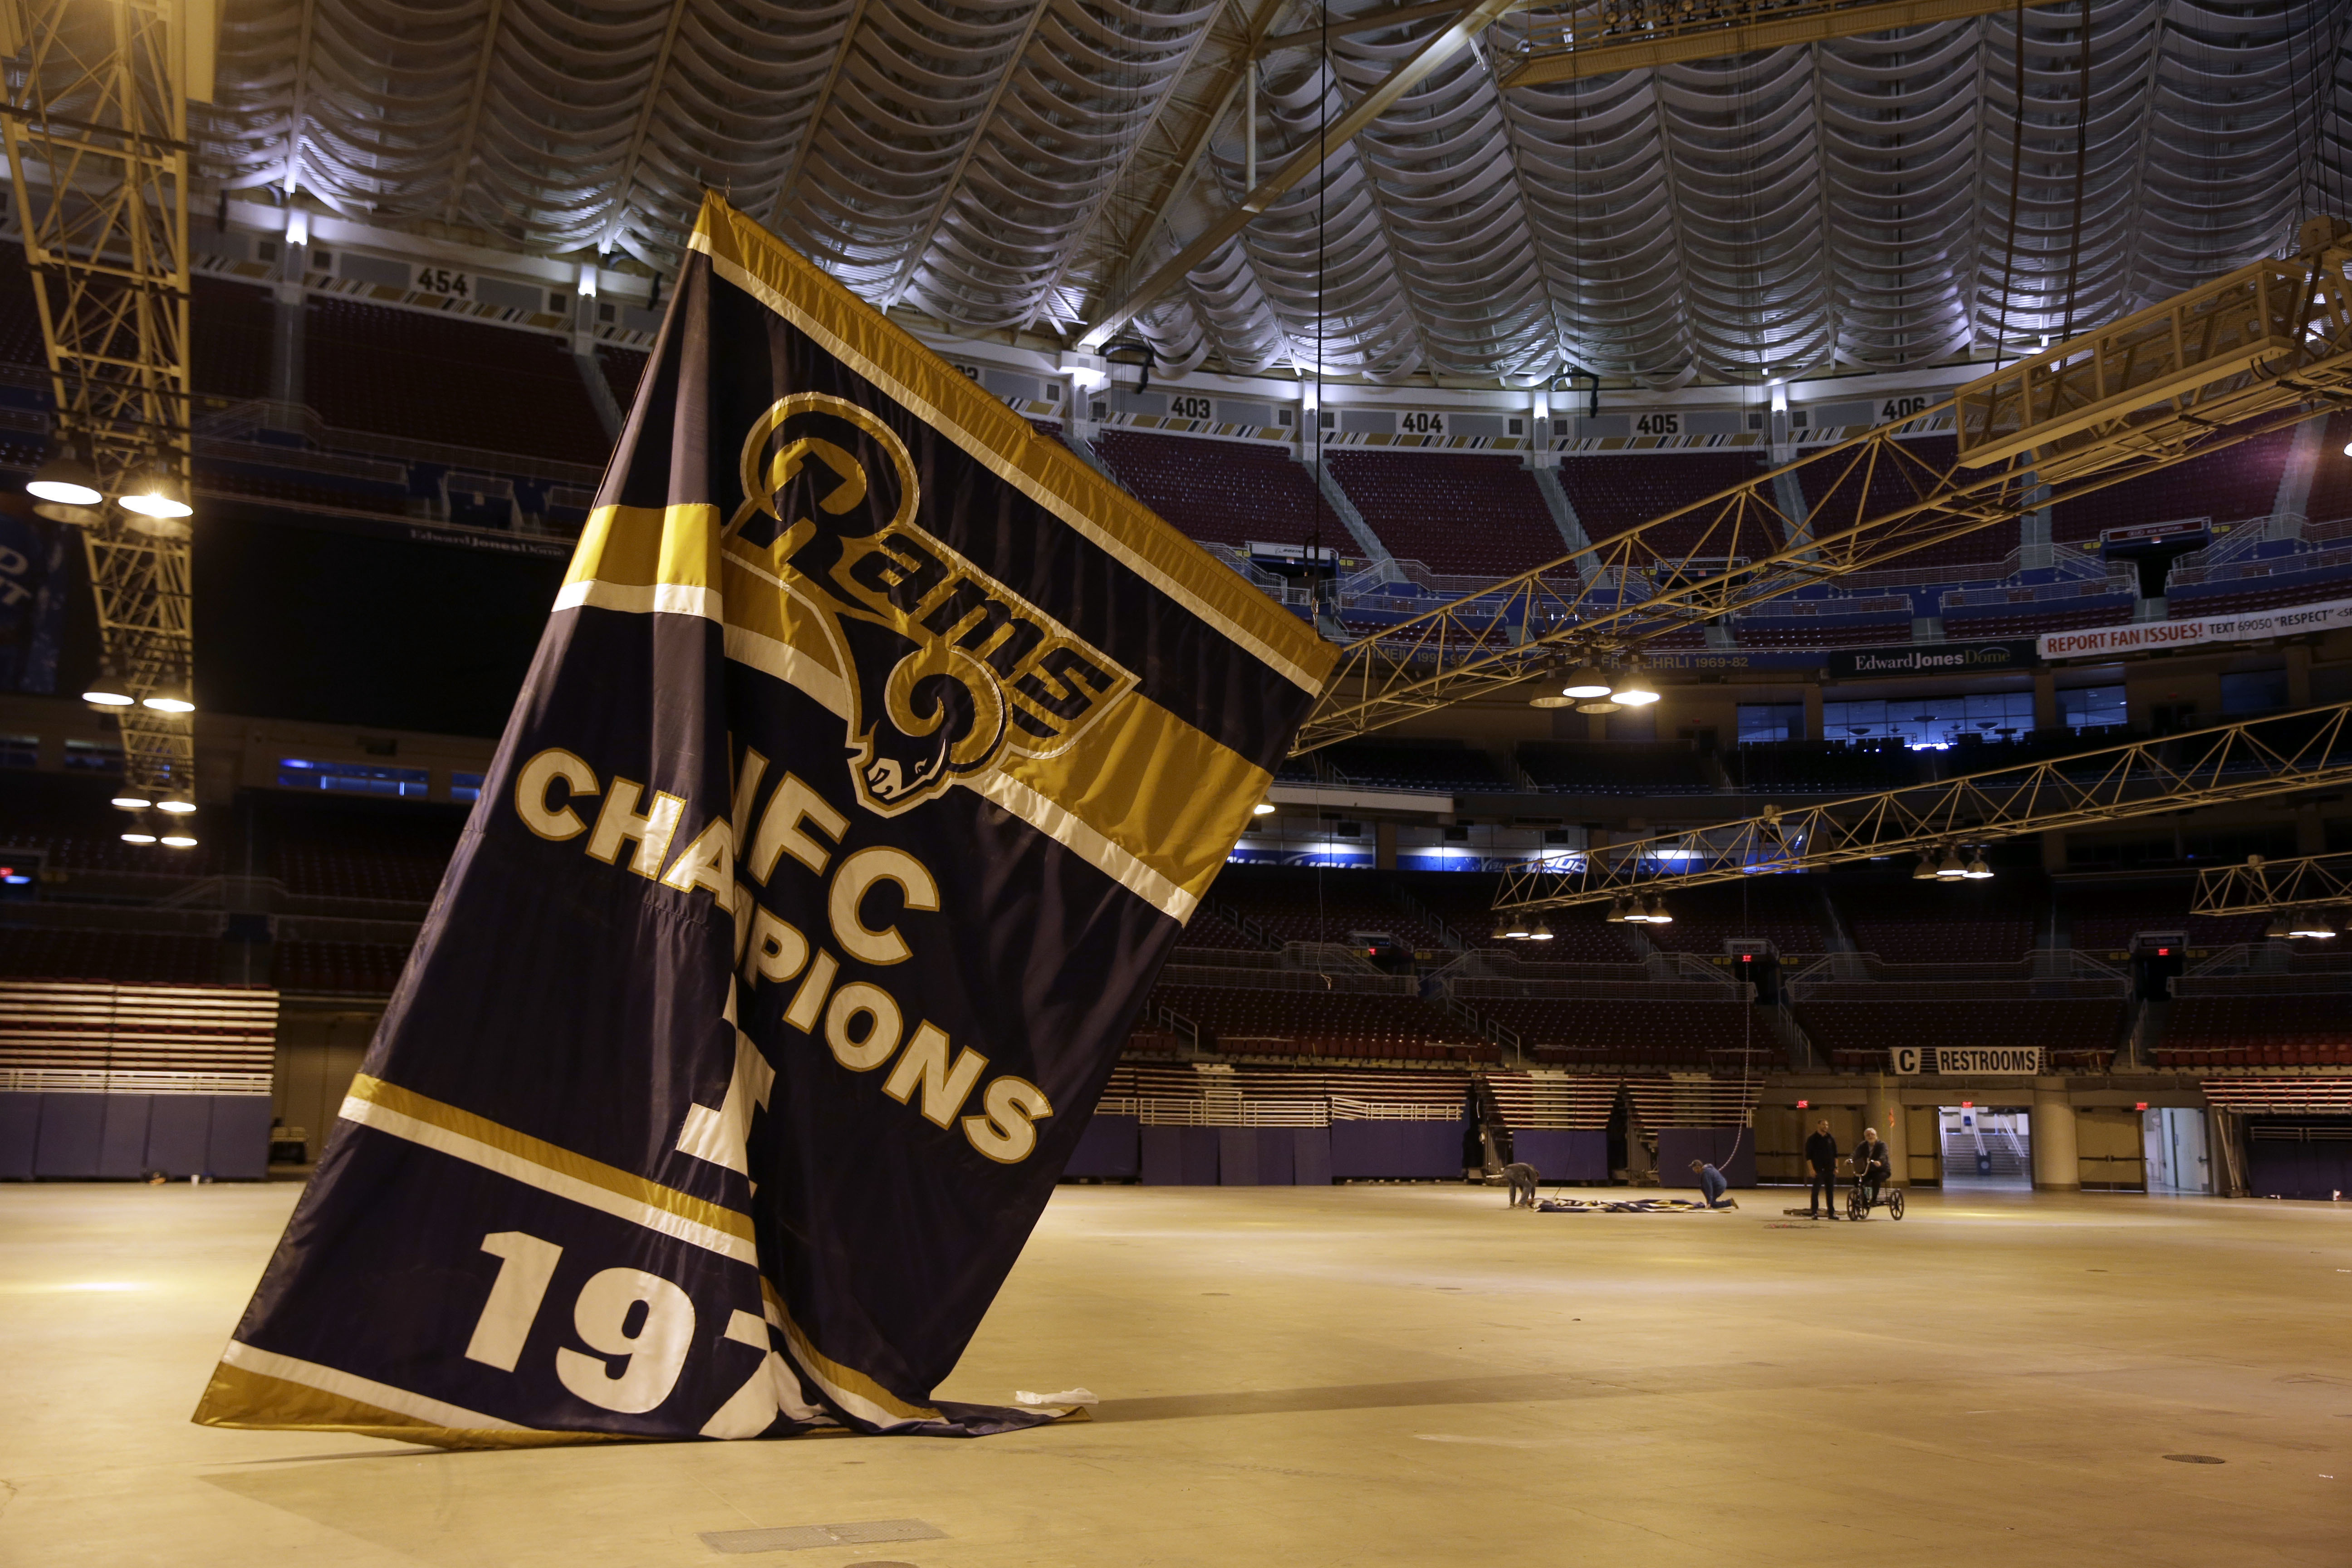 FILE - In this Jan. 14, 2016 file photo, championship banners are removed from the Edward Jones Dome, former home of the St. Louis Rams football team in St. Louis. From the goat that enjoyed a long, successful run cursing the Cubs to those who bet on Leic